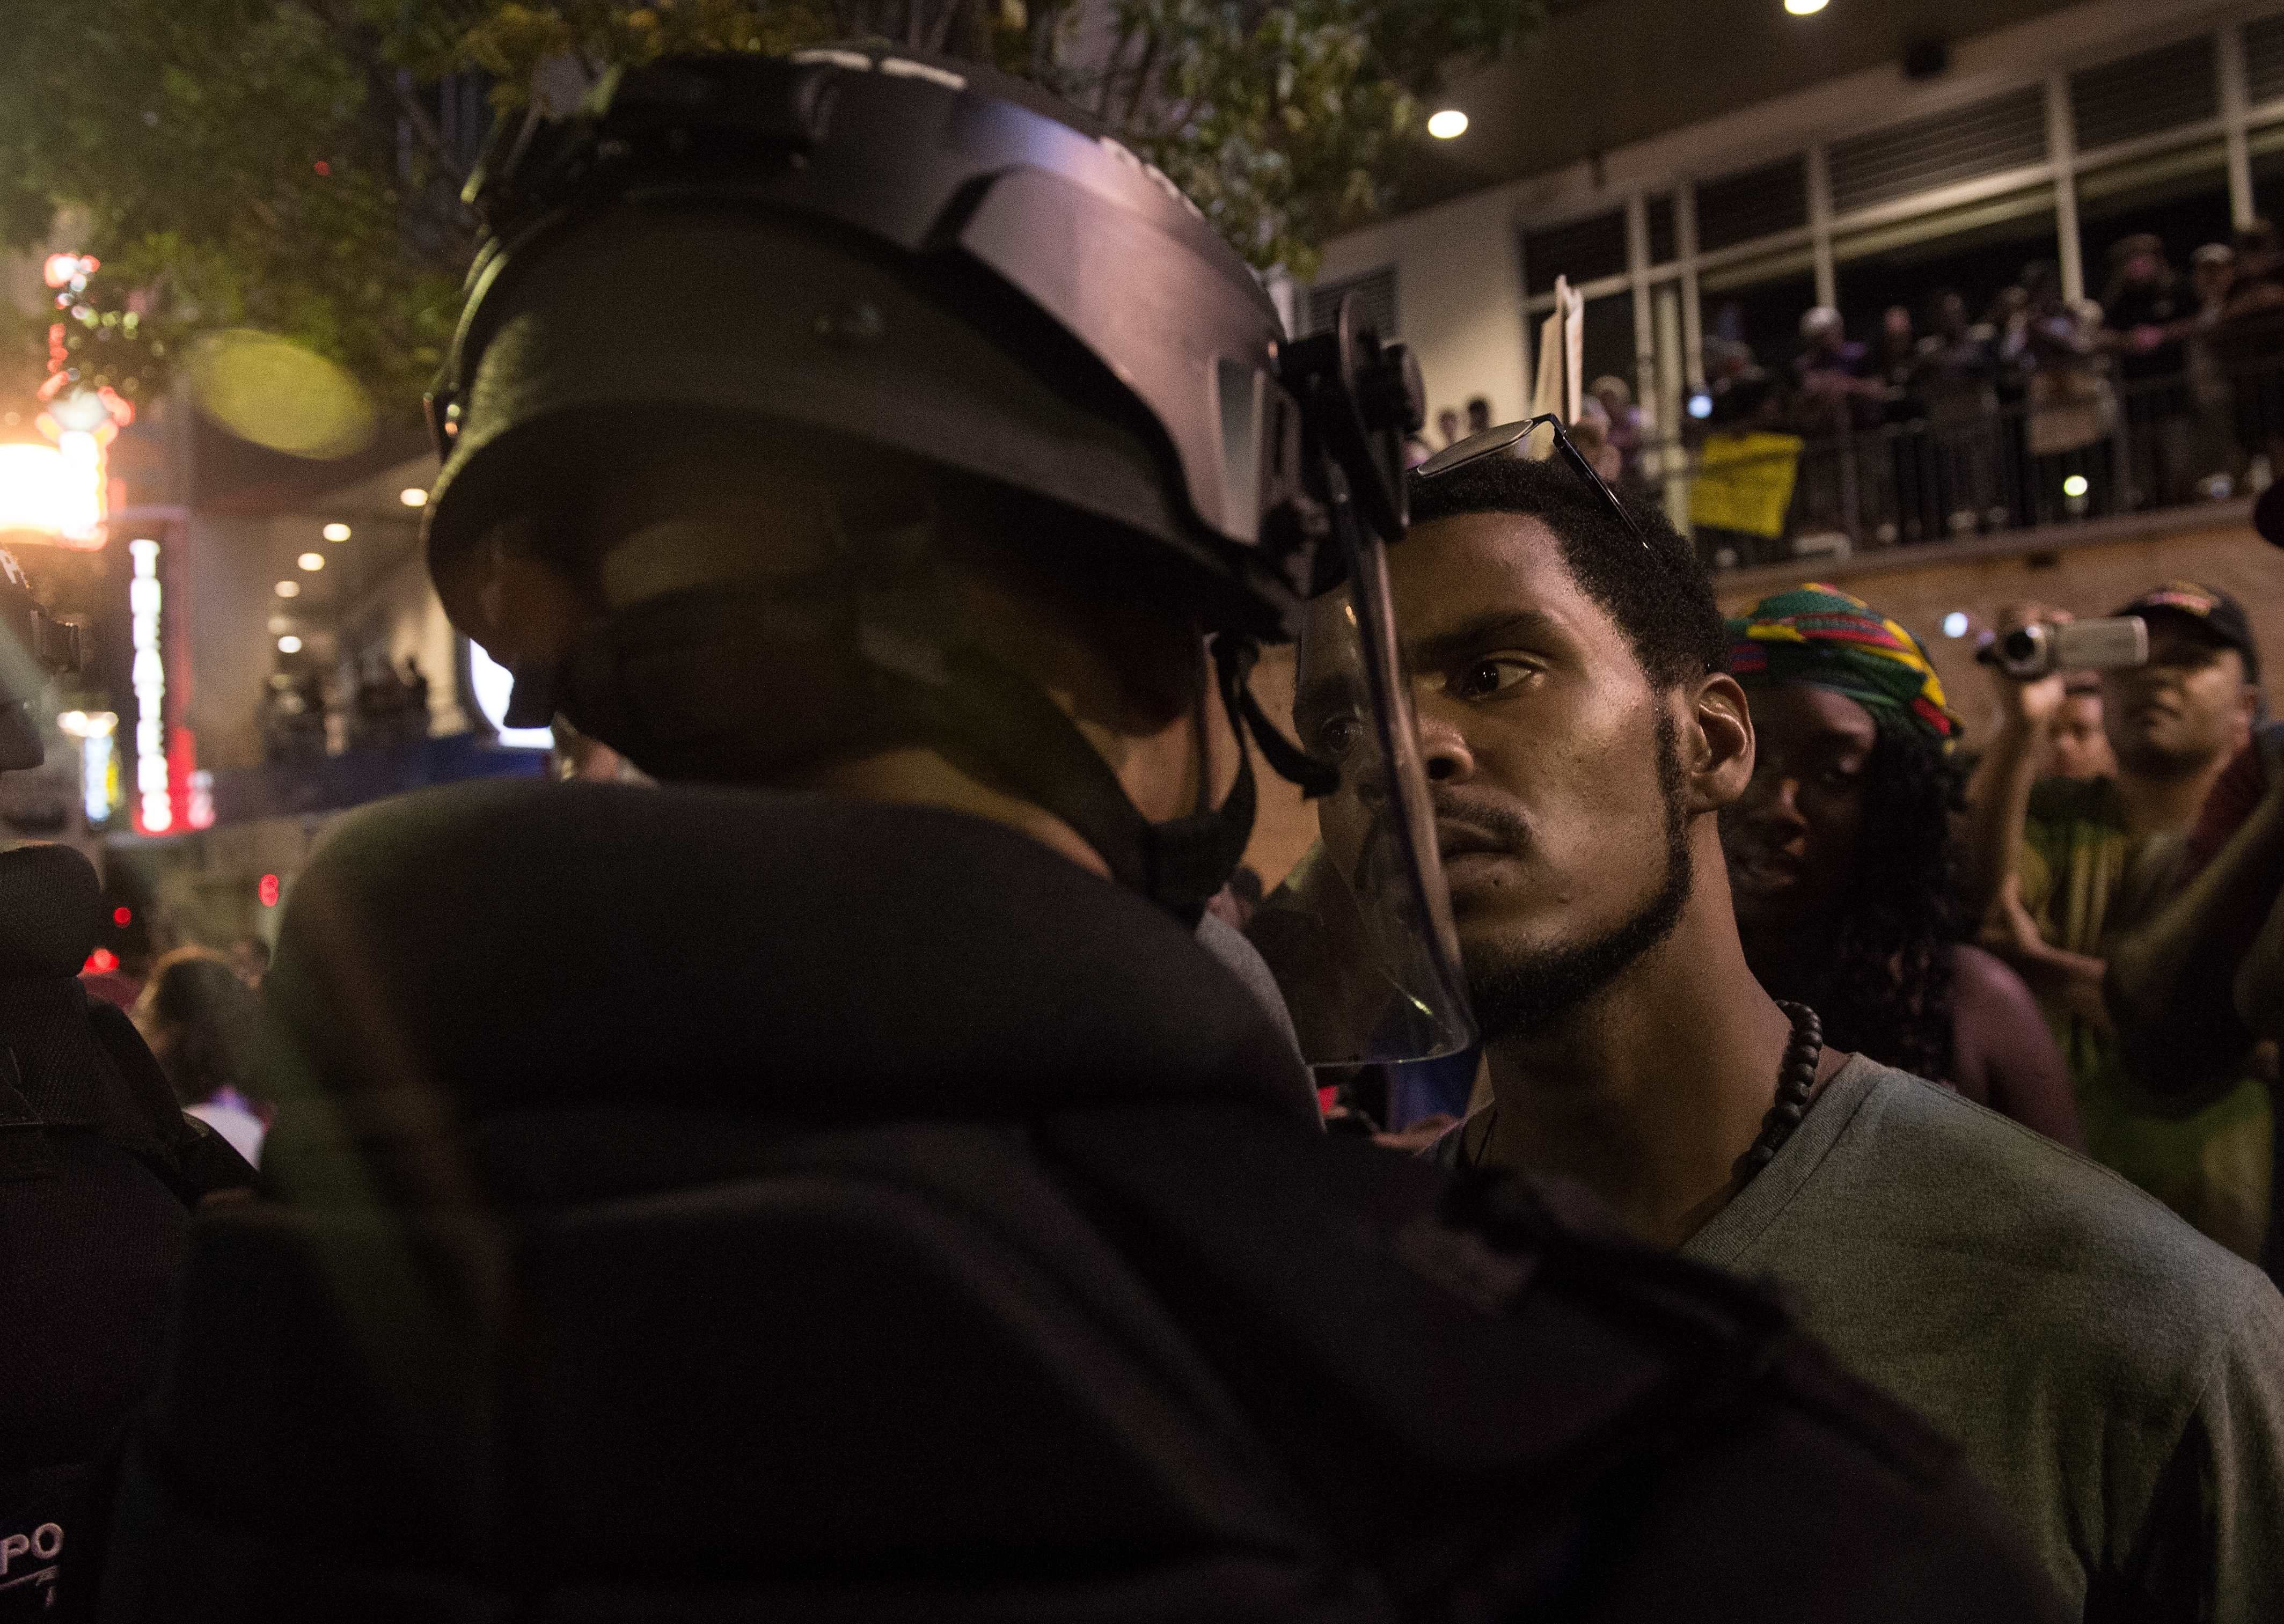 A protester stares at riot police during a demonstration against police brutality in Charlotte, North Carolina, on September 21, 2016, following the shooting of Keith Lamont Scott the previous day. A protester in Charlotte, North Carolina was fatally shot by a civilian during a second night of unrest after the police killed a black man, officials said. / AFP / NICHOLAS KAMM        (Photo credit should read NICHOLAS KAMM/AFP/Getty Images)